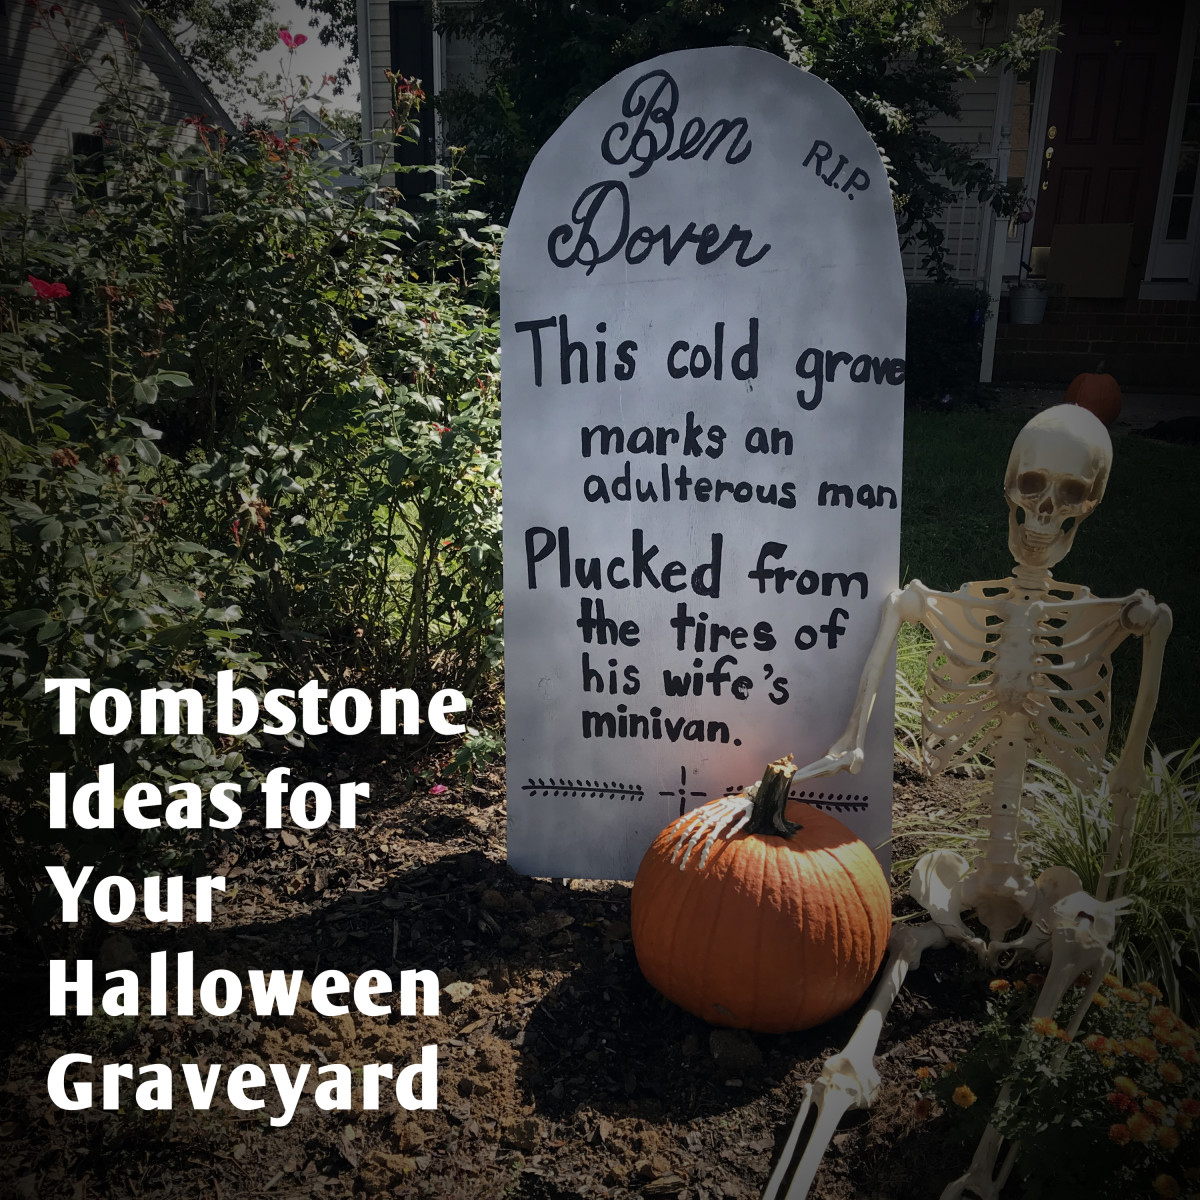 transform your yard into a creepy halloween graveyard with fake tombstones and clever epitaphs here